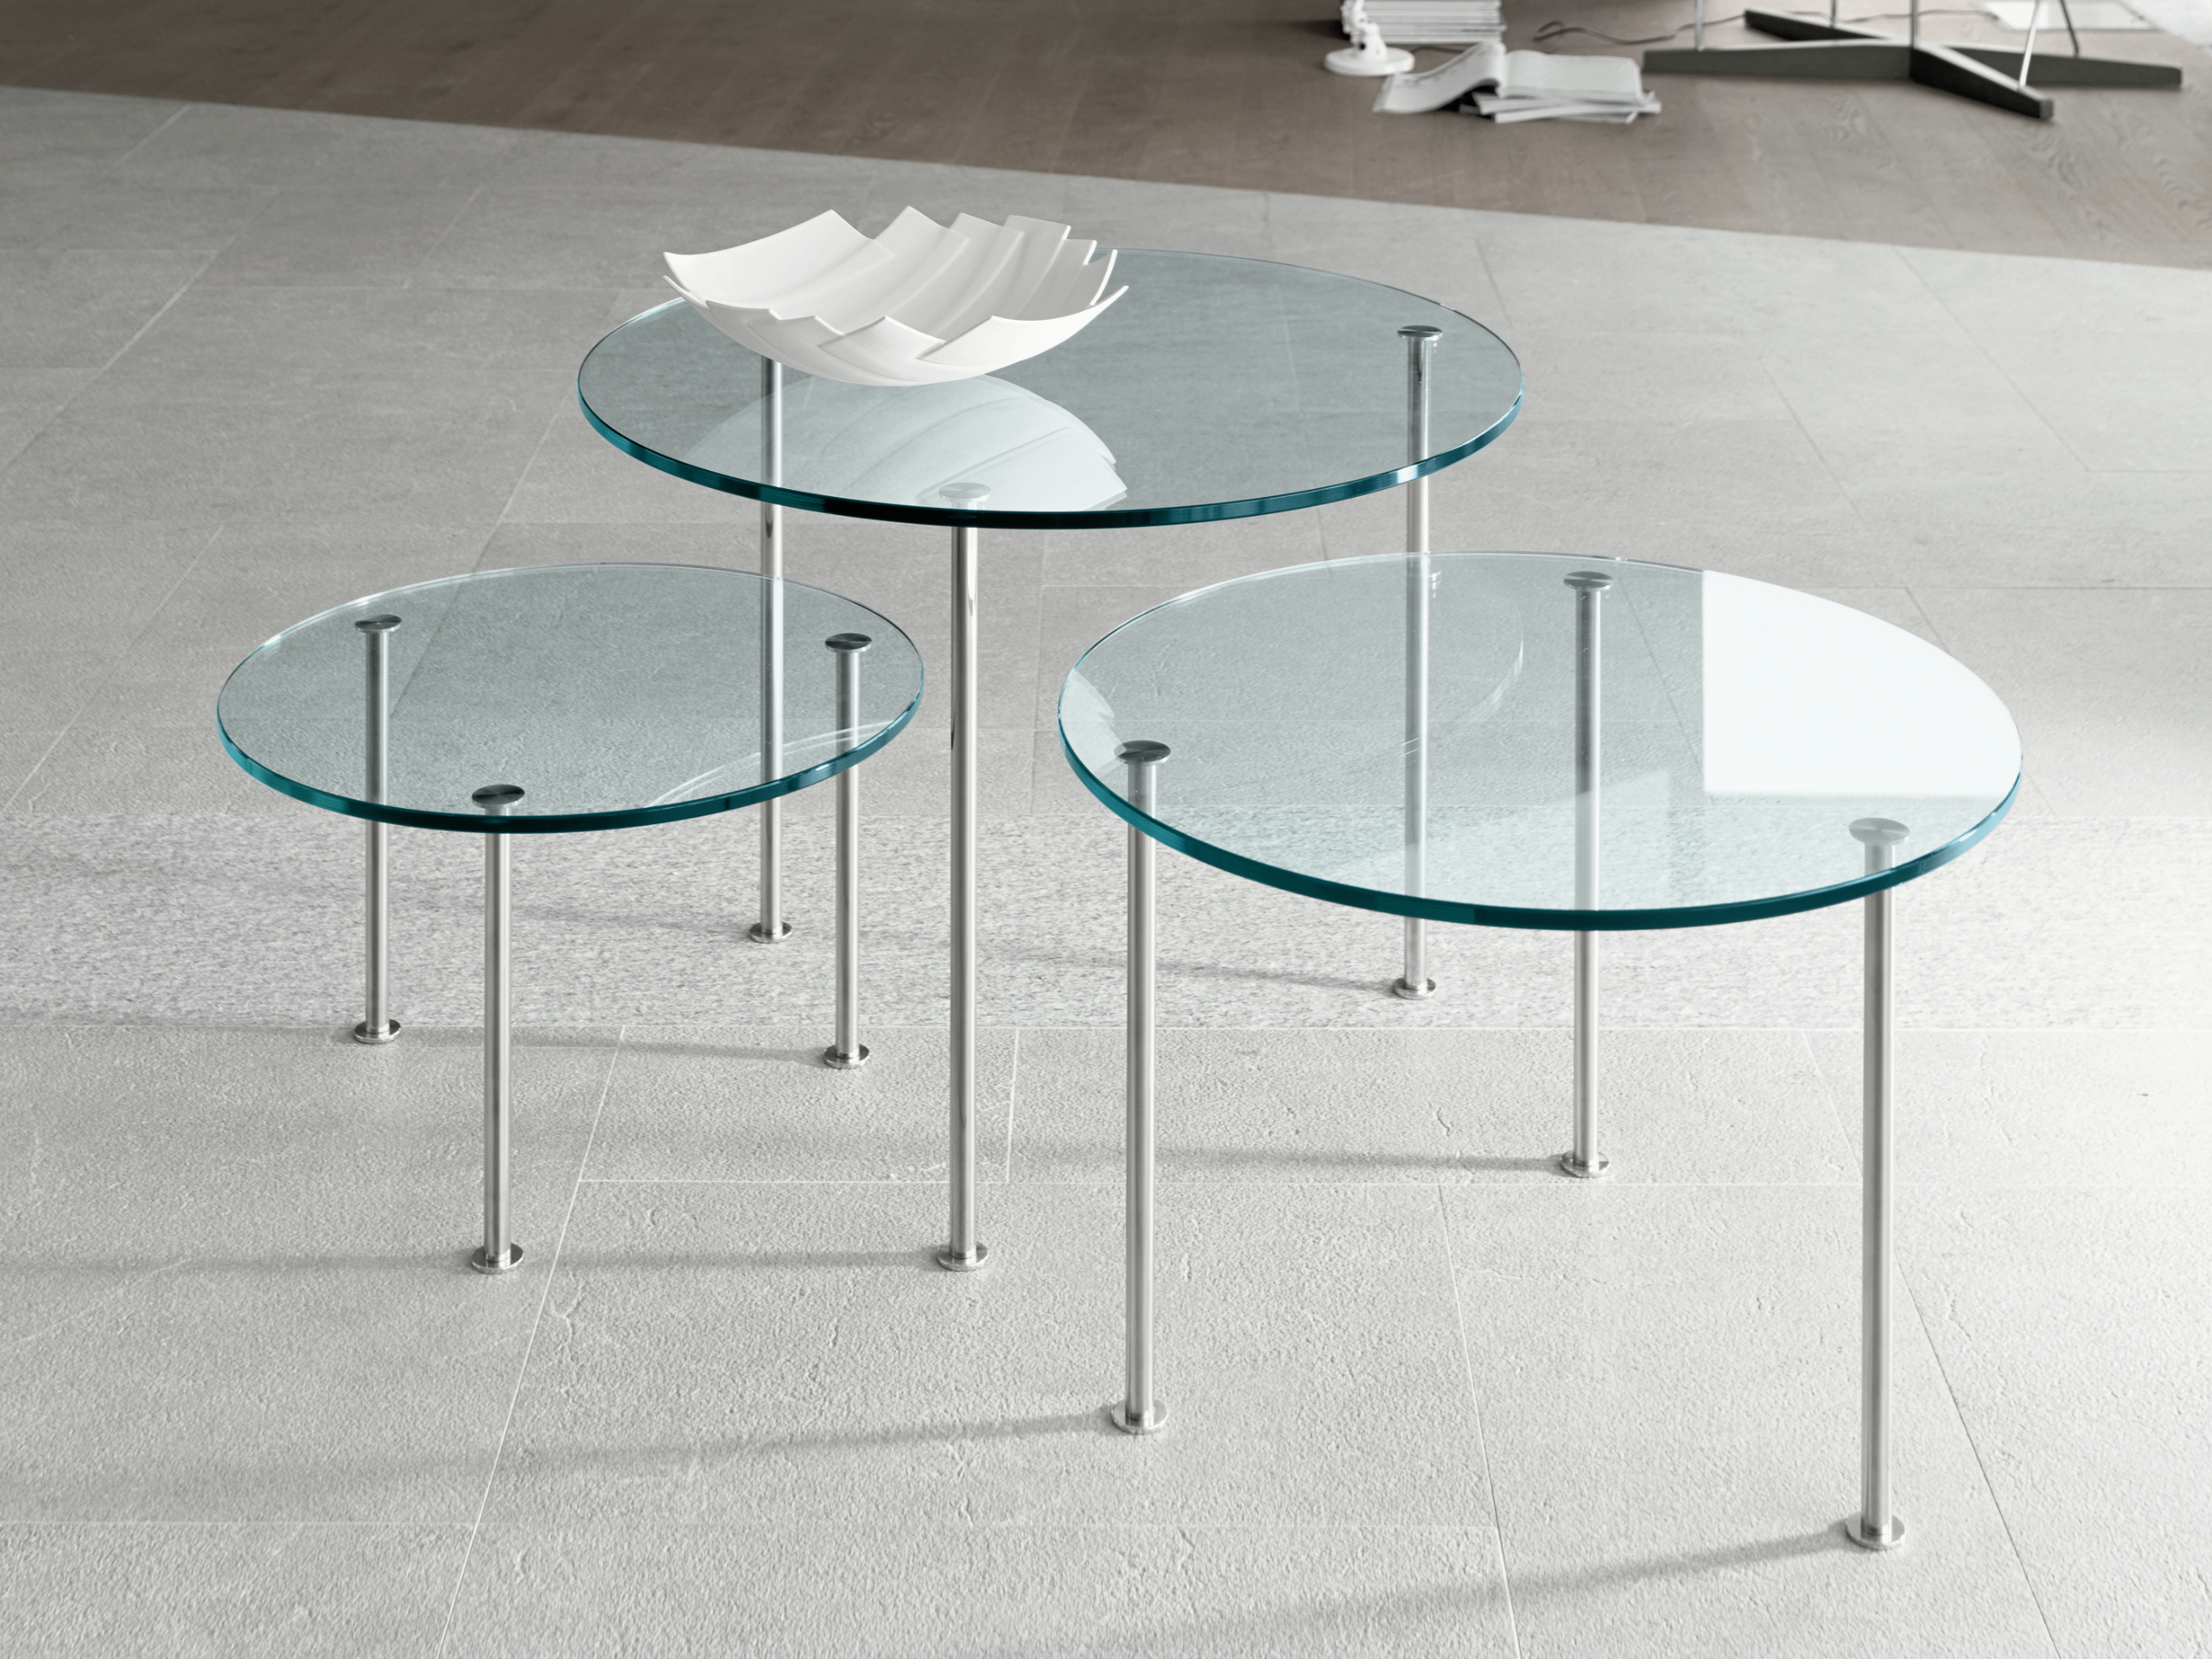 Table basse en verre twig by t d tonelli design design studio d 39 urbino l - Table basse design en verre ...